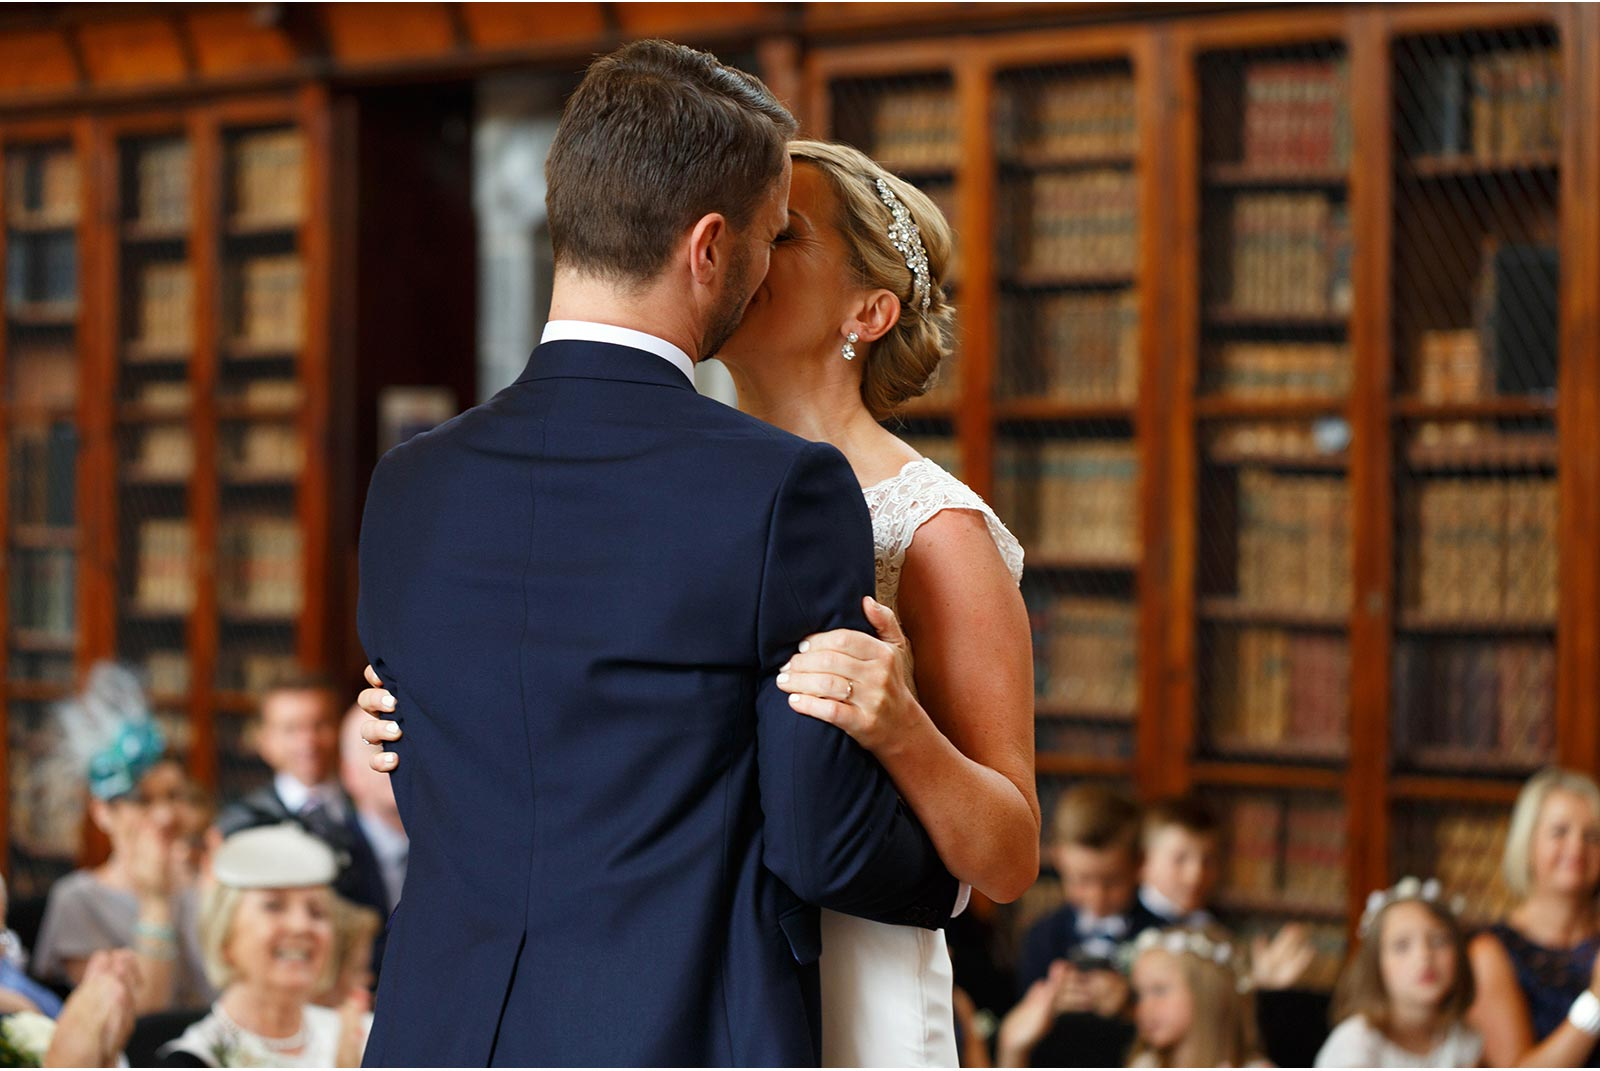 just married in UCC Aula Maxima, first kiss, you may kiss the bride